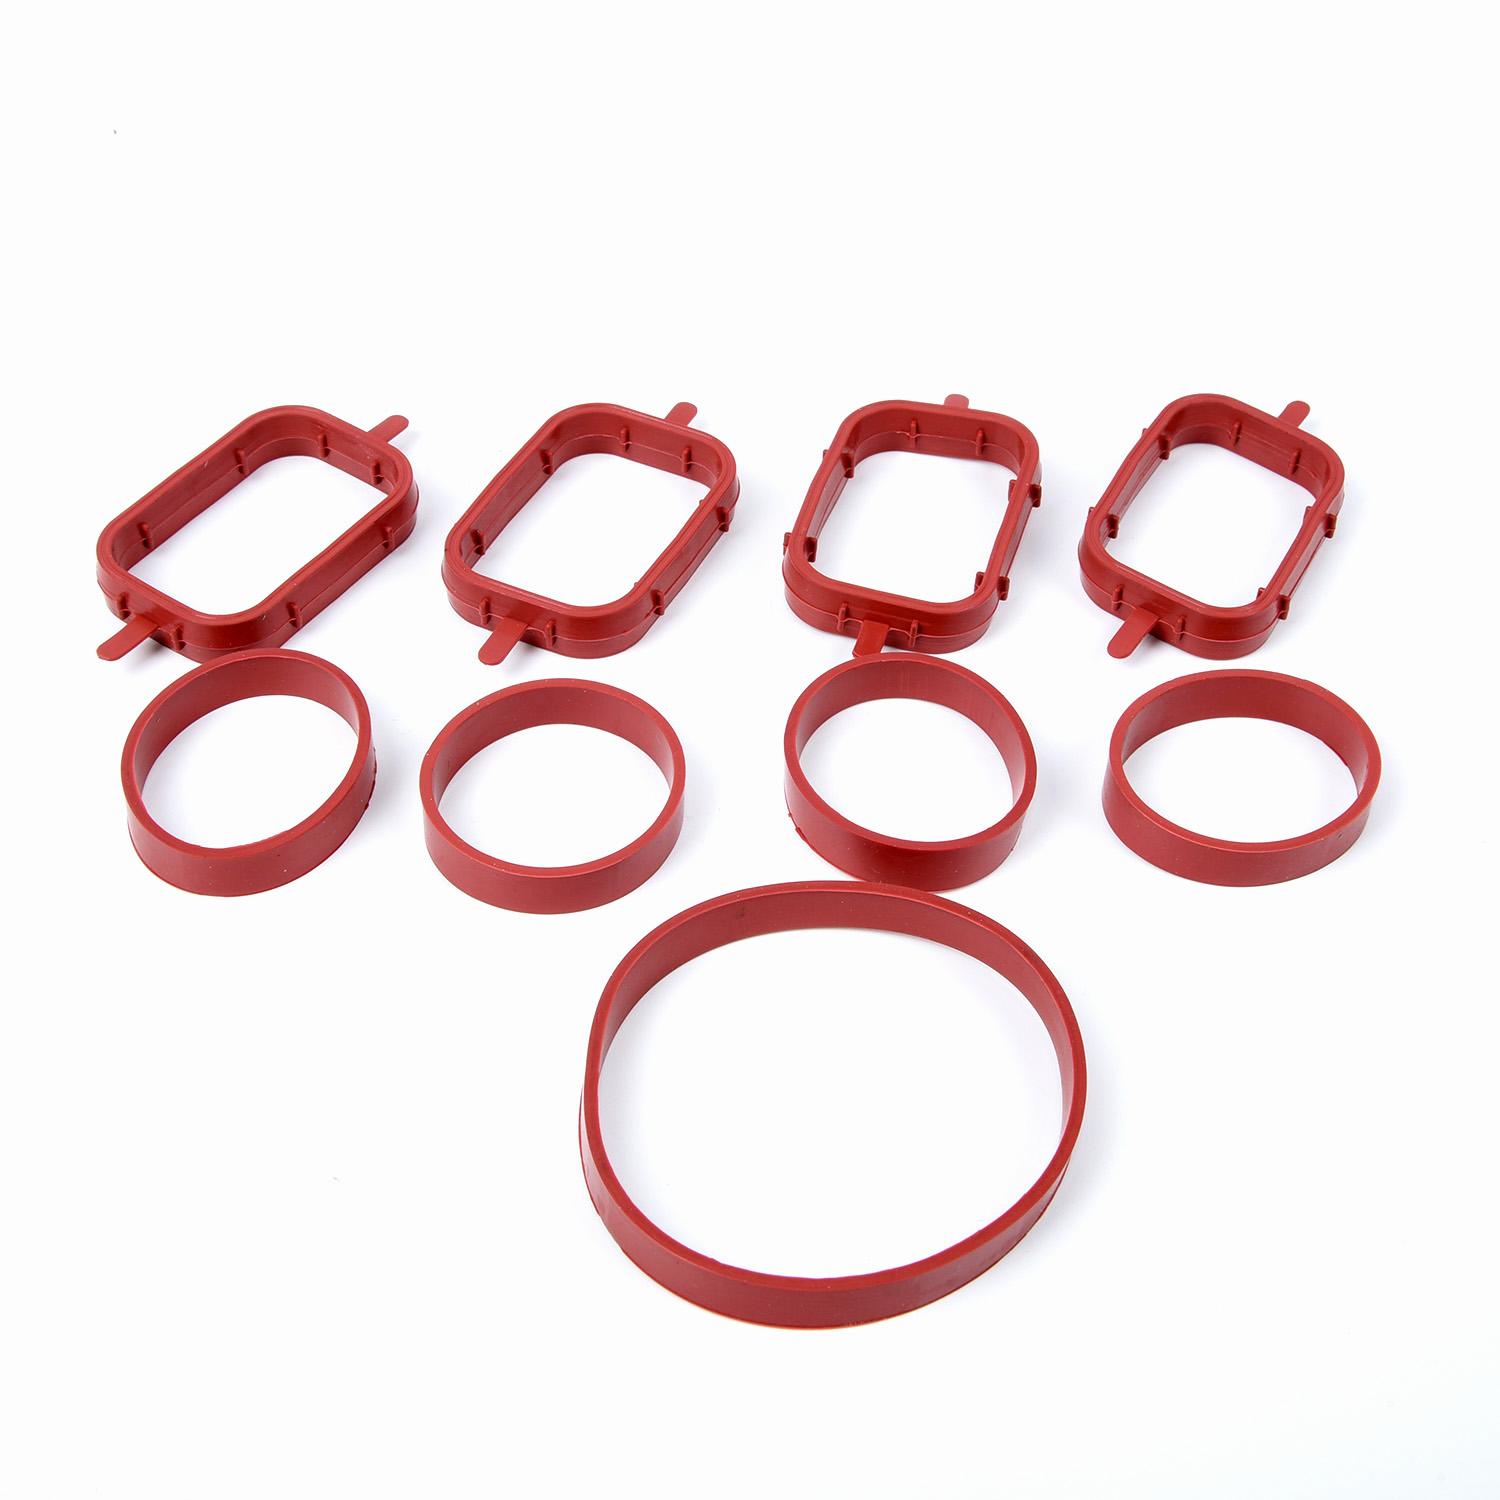 22mm Diesel Swirl Flap Blanks Bungs Gasket For BMW E46 320d E90 E91 330d 330xd image